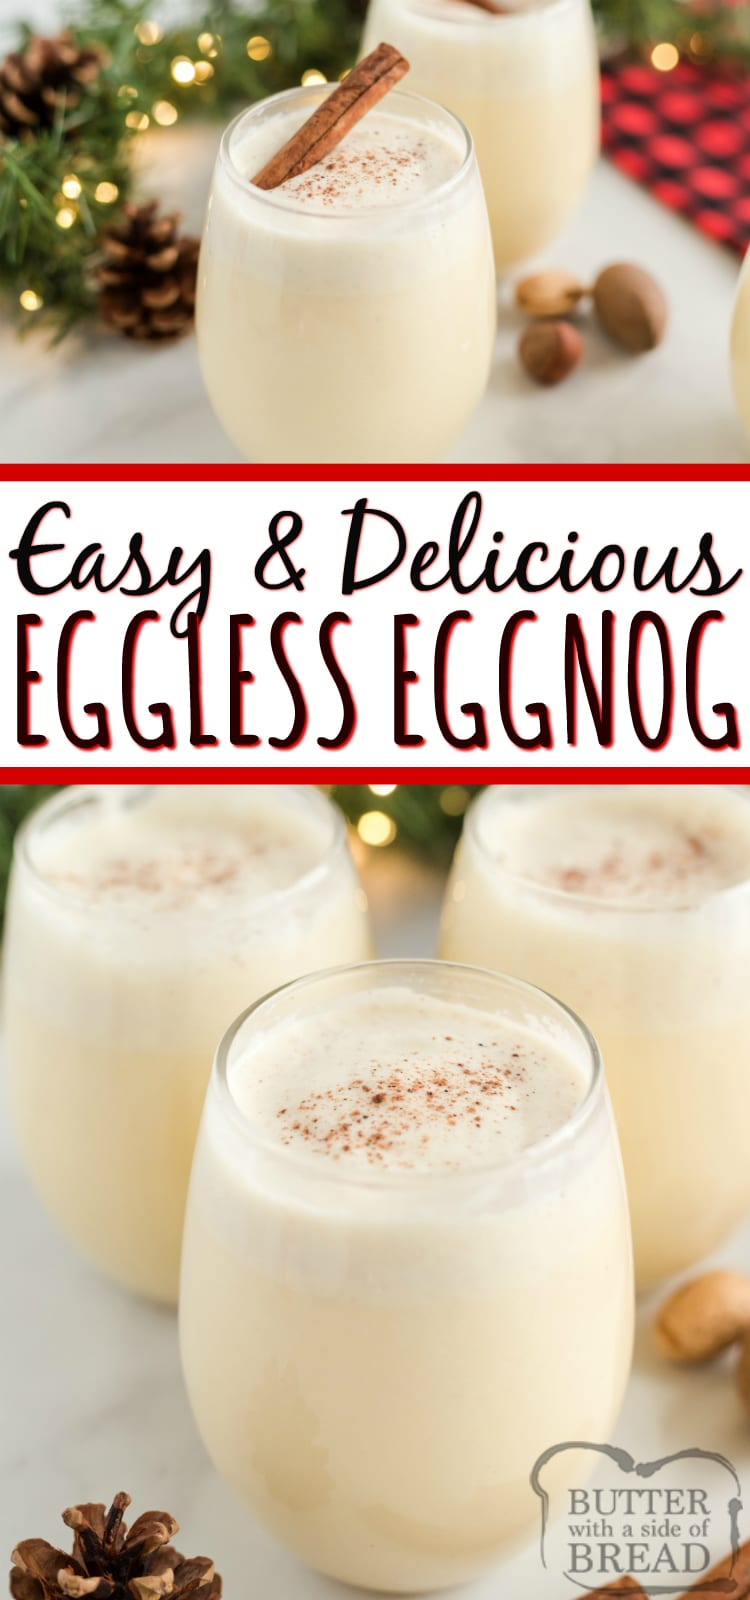 Easy Eggless Eggnog recipe can be made quickly in a blender with French vanilla pudding, milk, whipped cream and a few other basic ingredients! This homemade eggnog recipe tastes just like your favorite holiday drink, no eggs necessary!